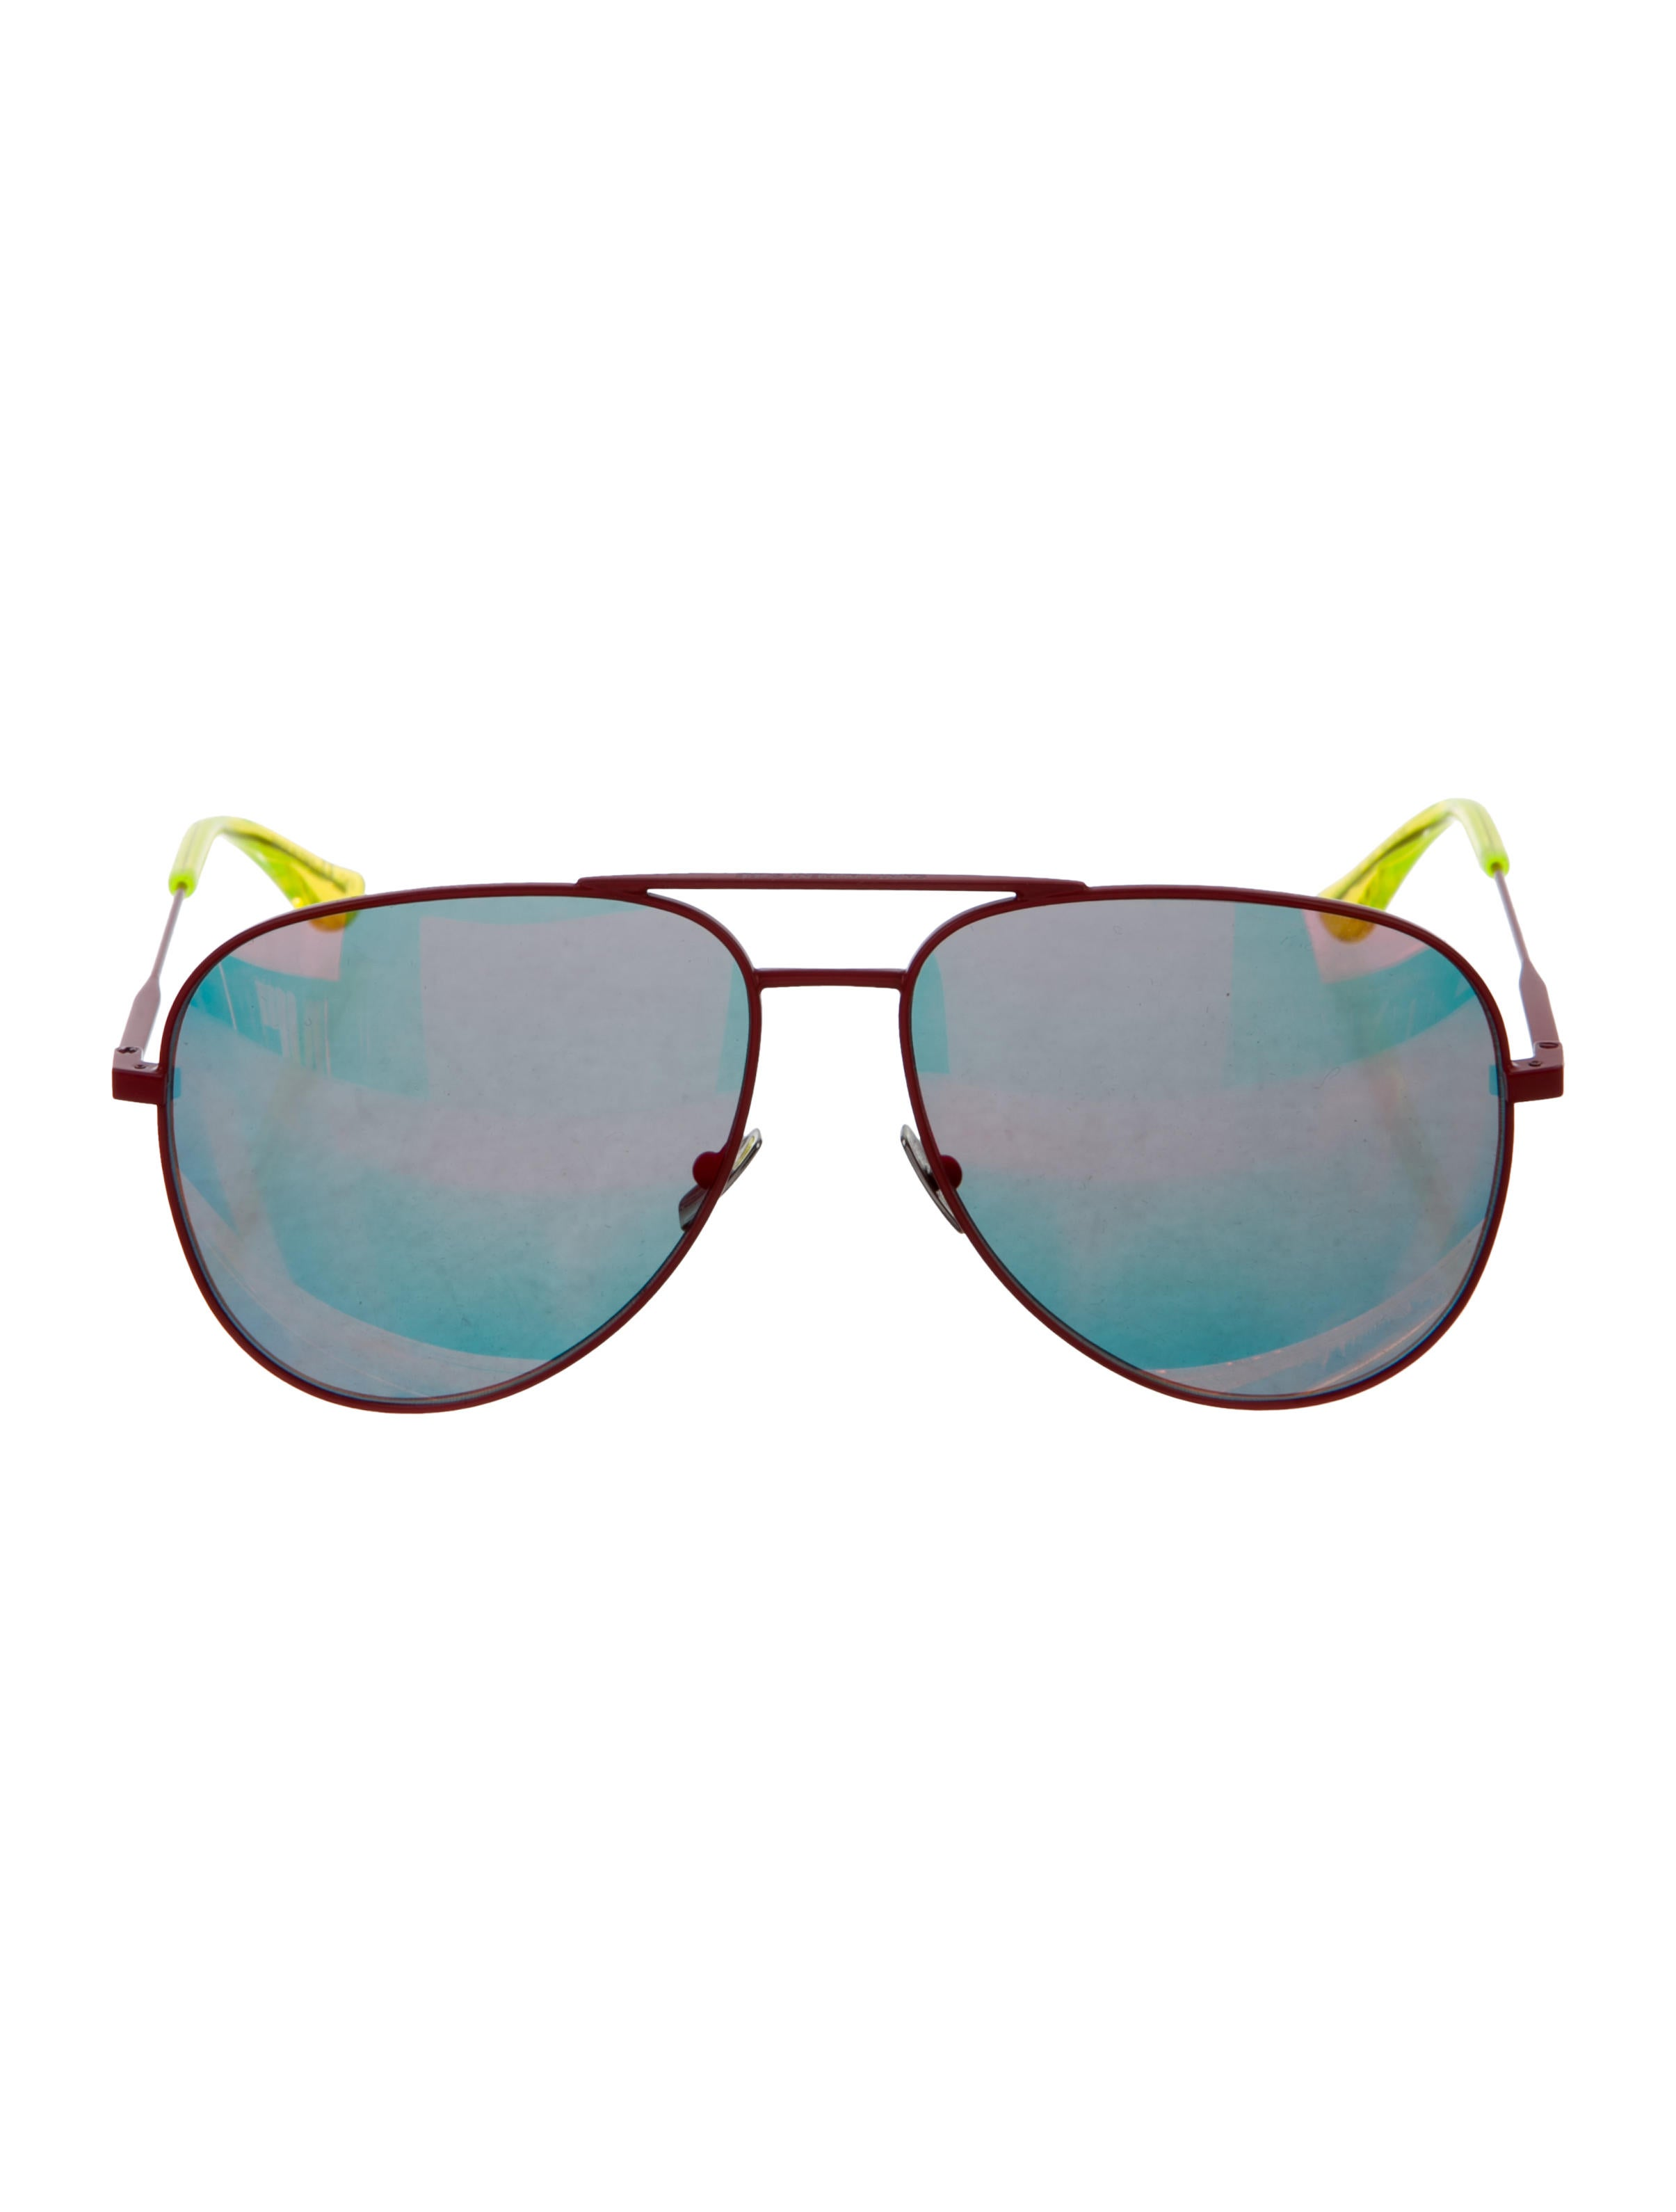 52886d66ebbd1a Saint Laurent Classic 11 Surf Aviator Sunglasses - Accessories ...